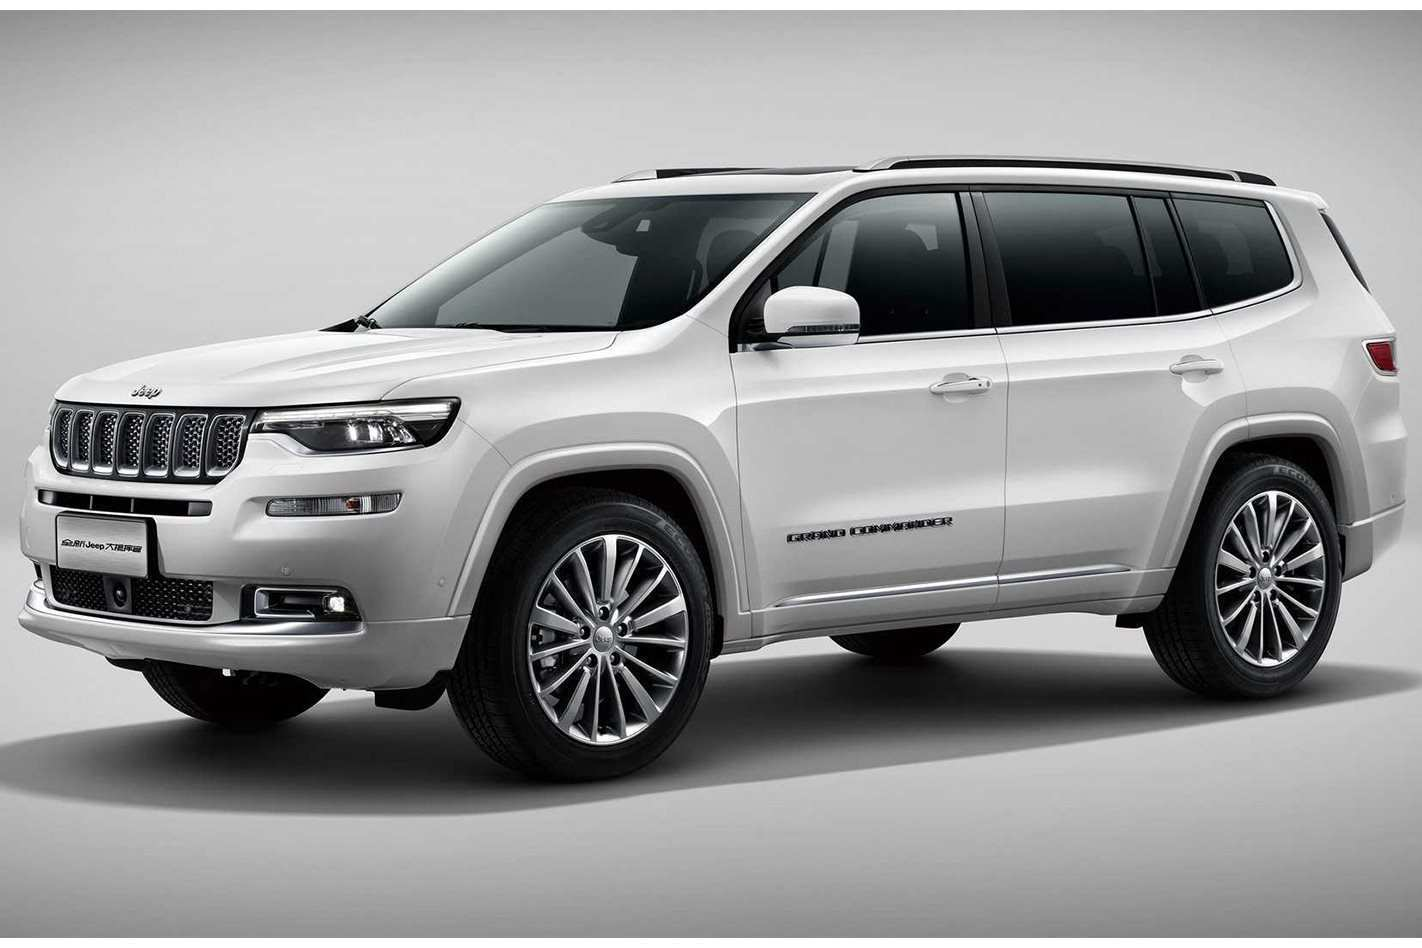 98 Best 2019 Jeep 7 Passenger Images